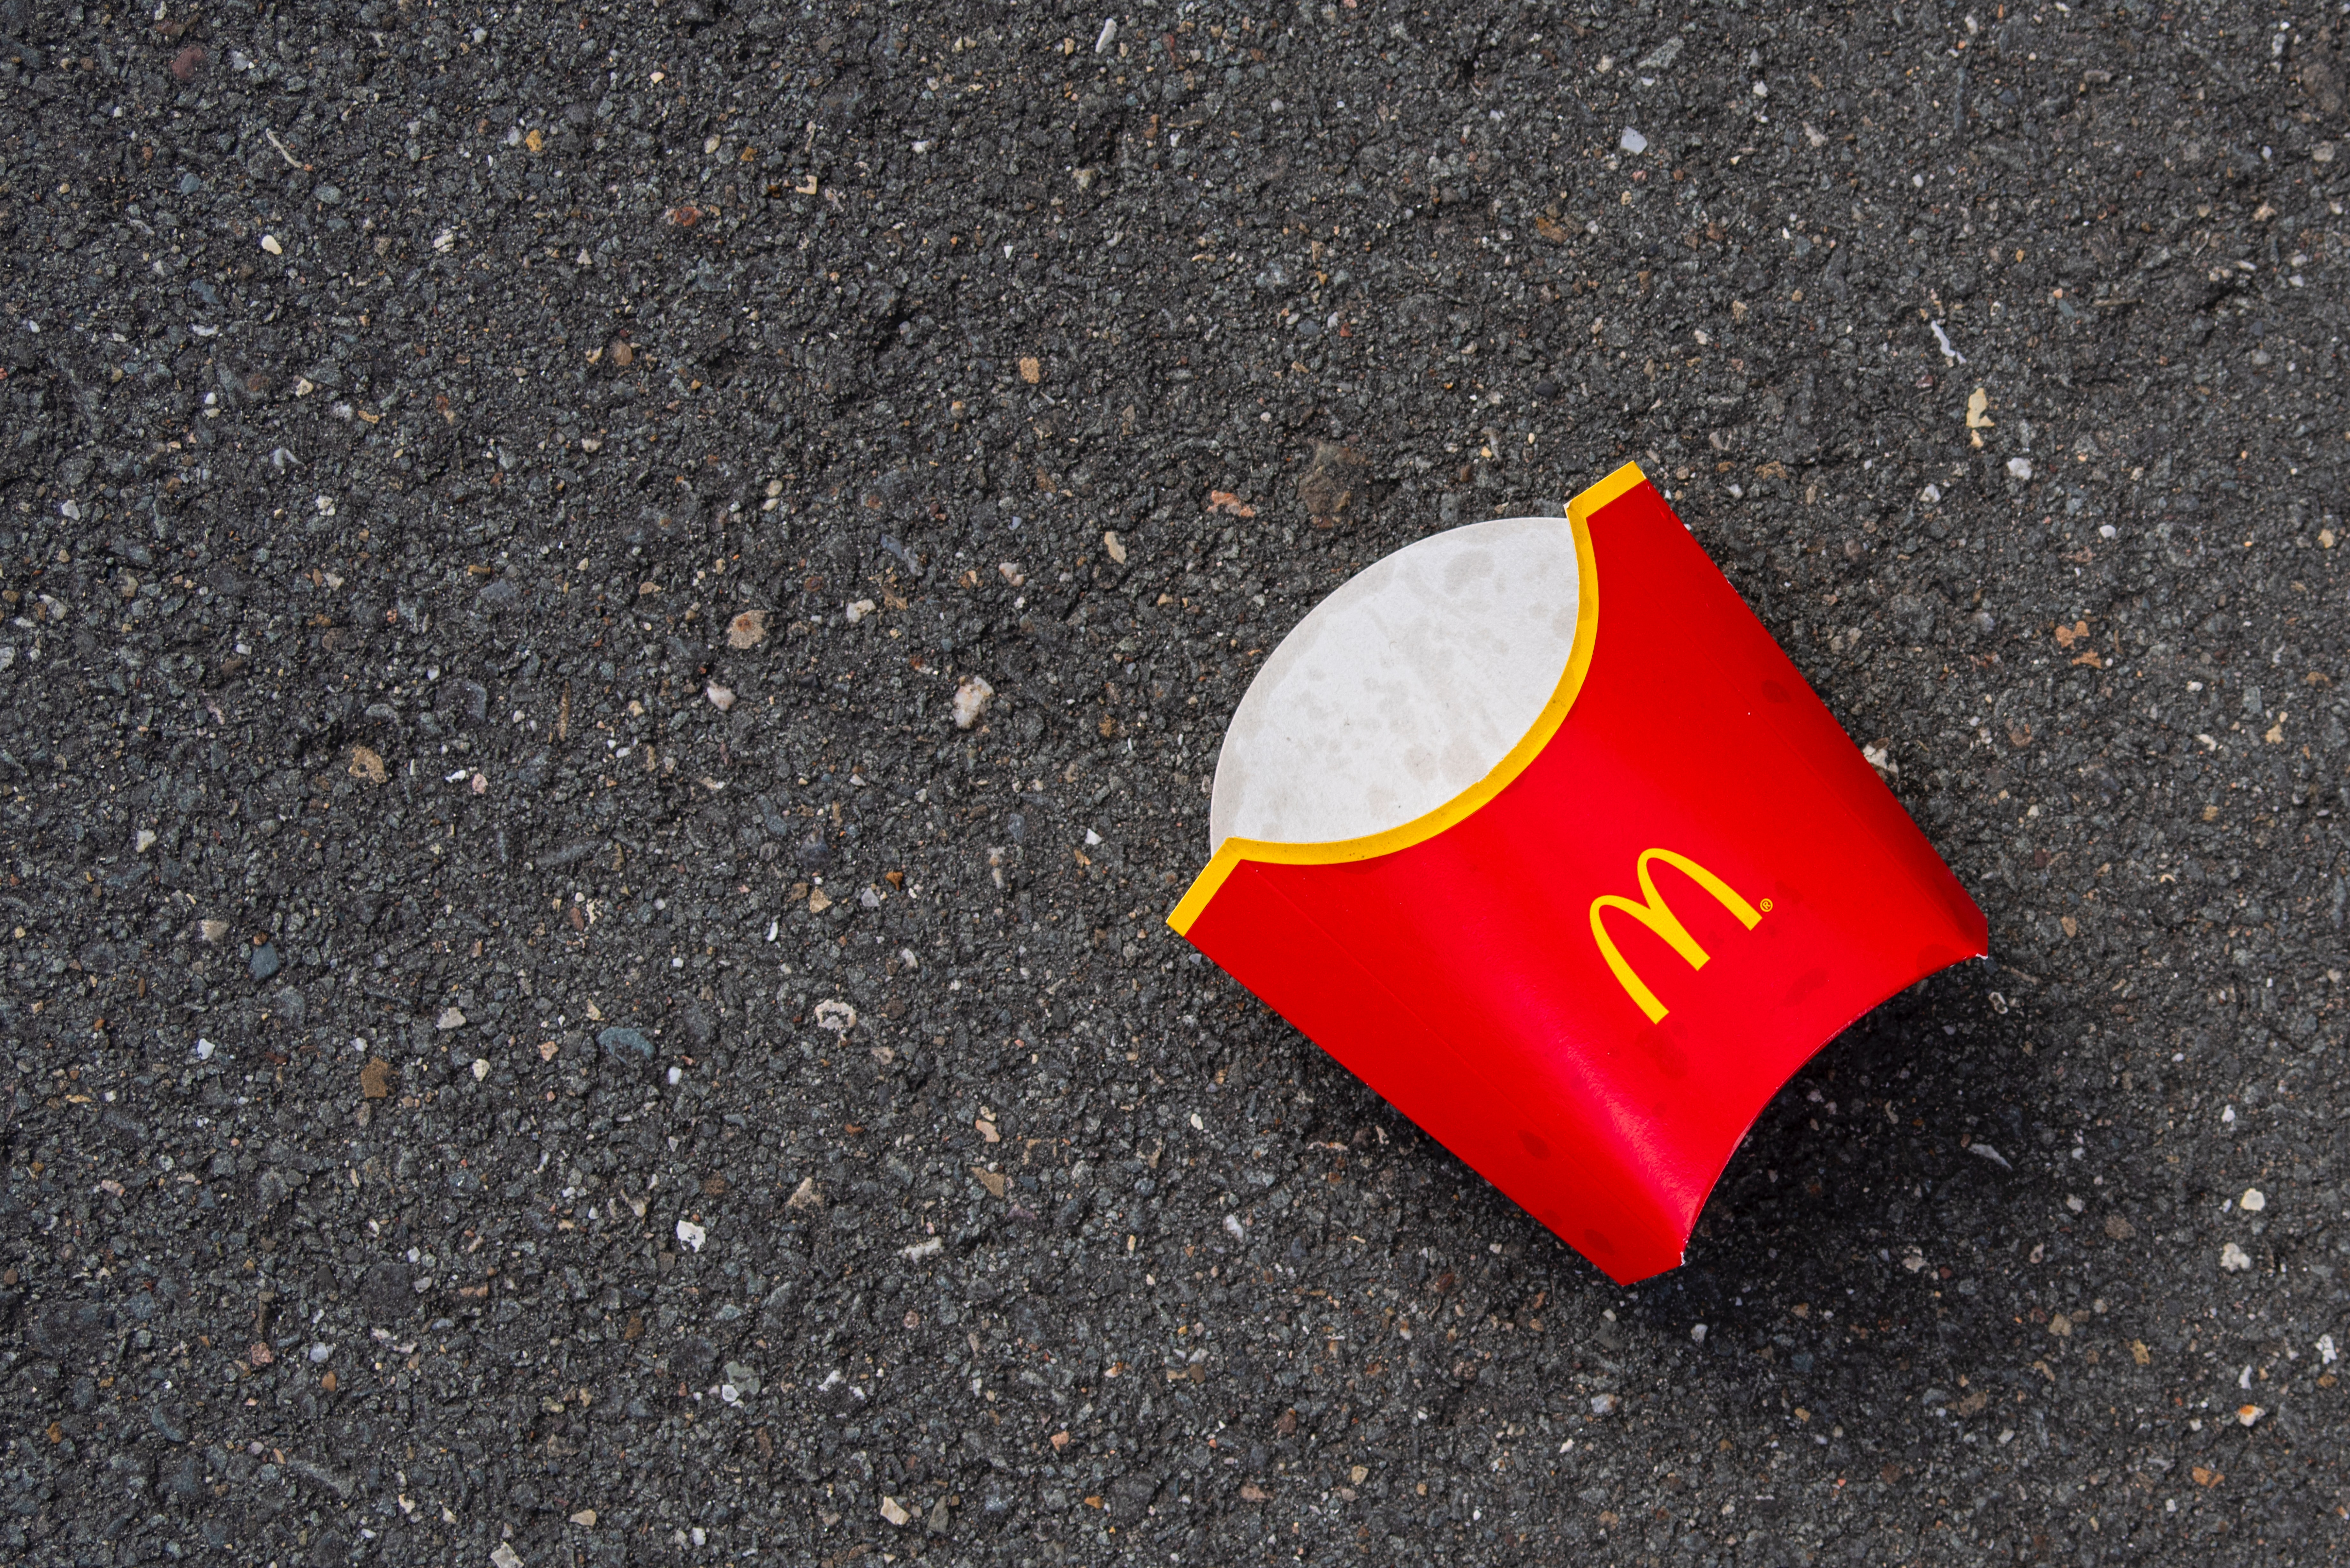 An empty McDonald's French fry sleeve resting on a tarmac surface.